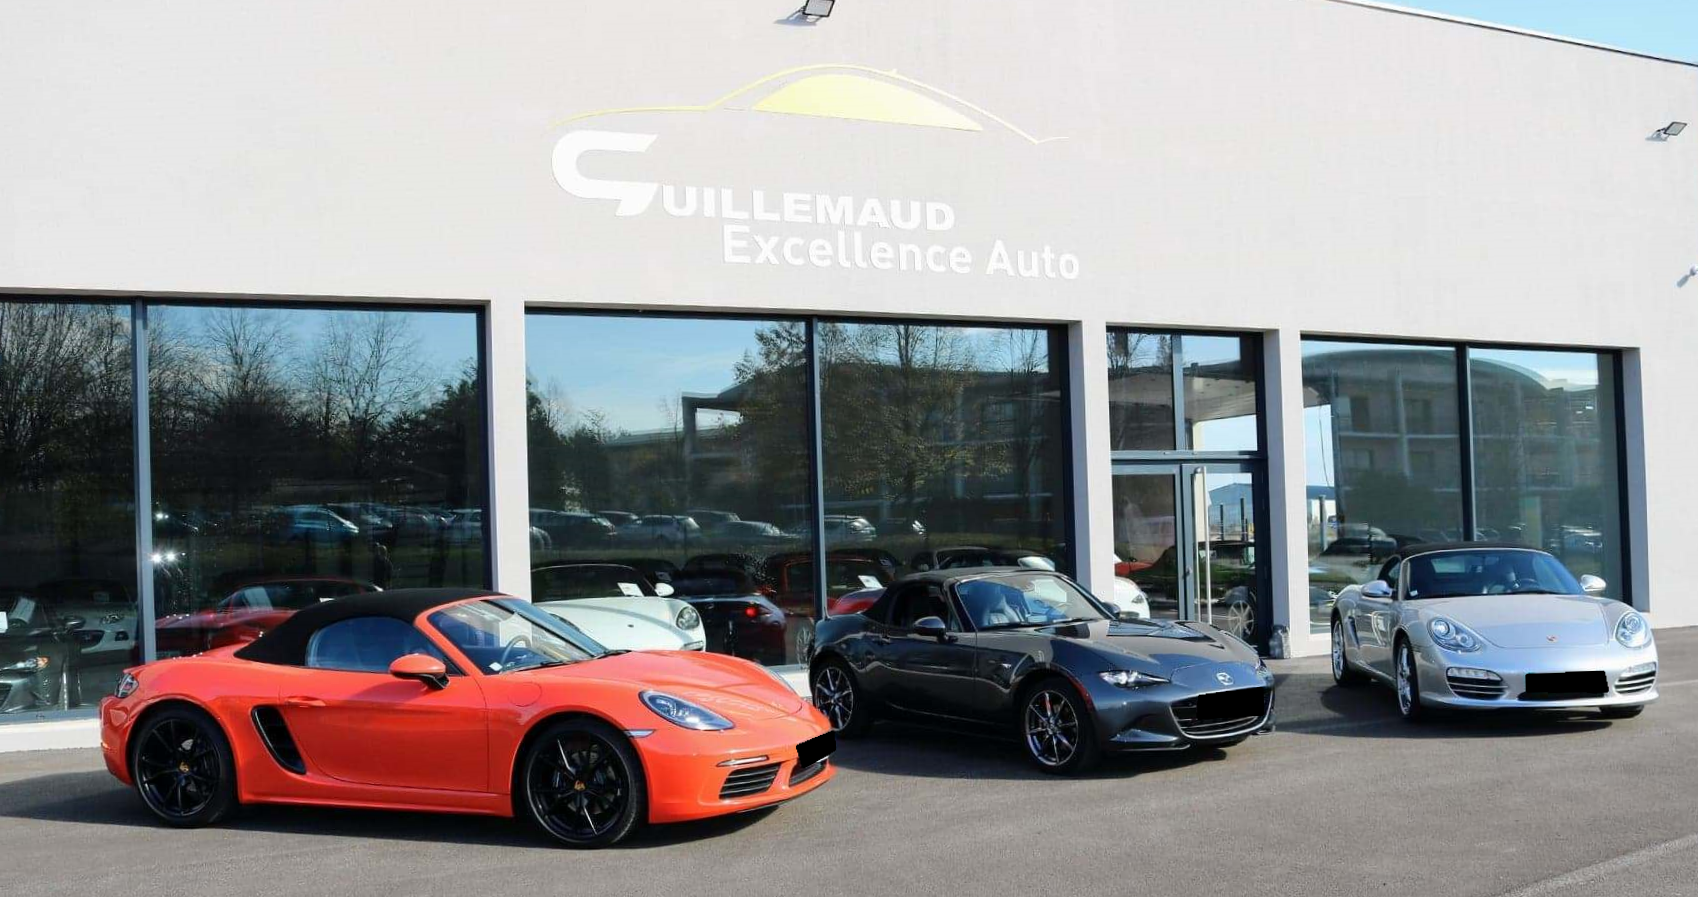 GUILLEMAUD EXCELLENCE AUTO CHARNAY LES MACON